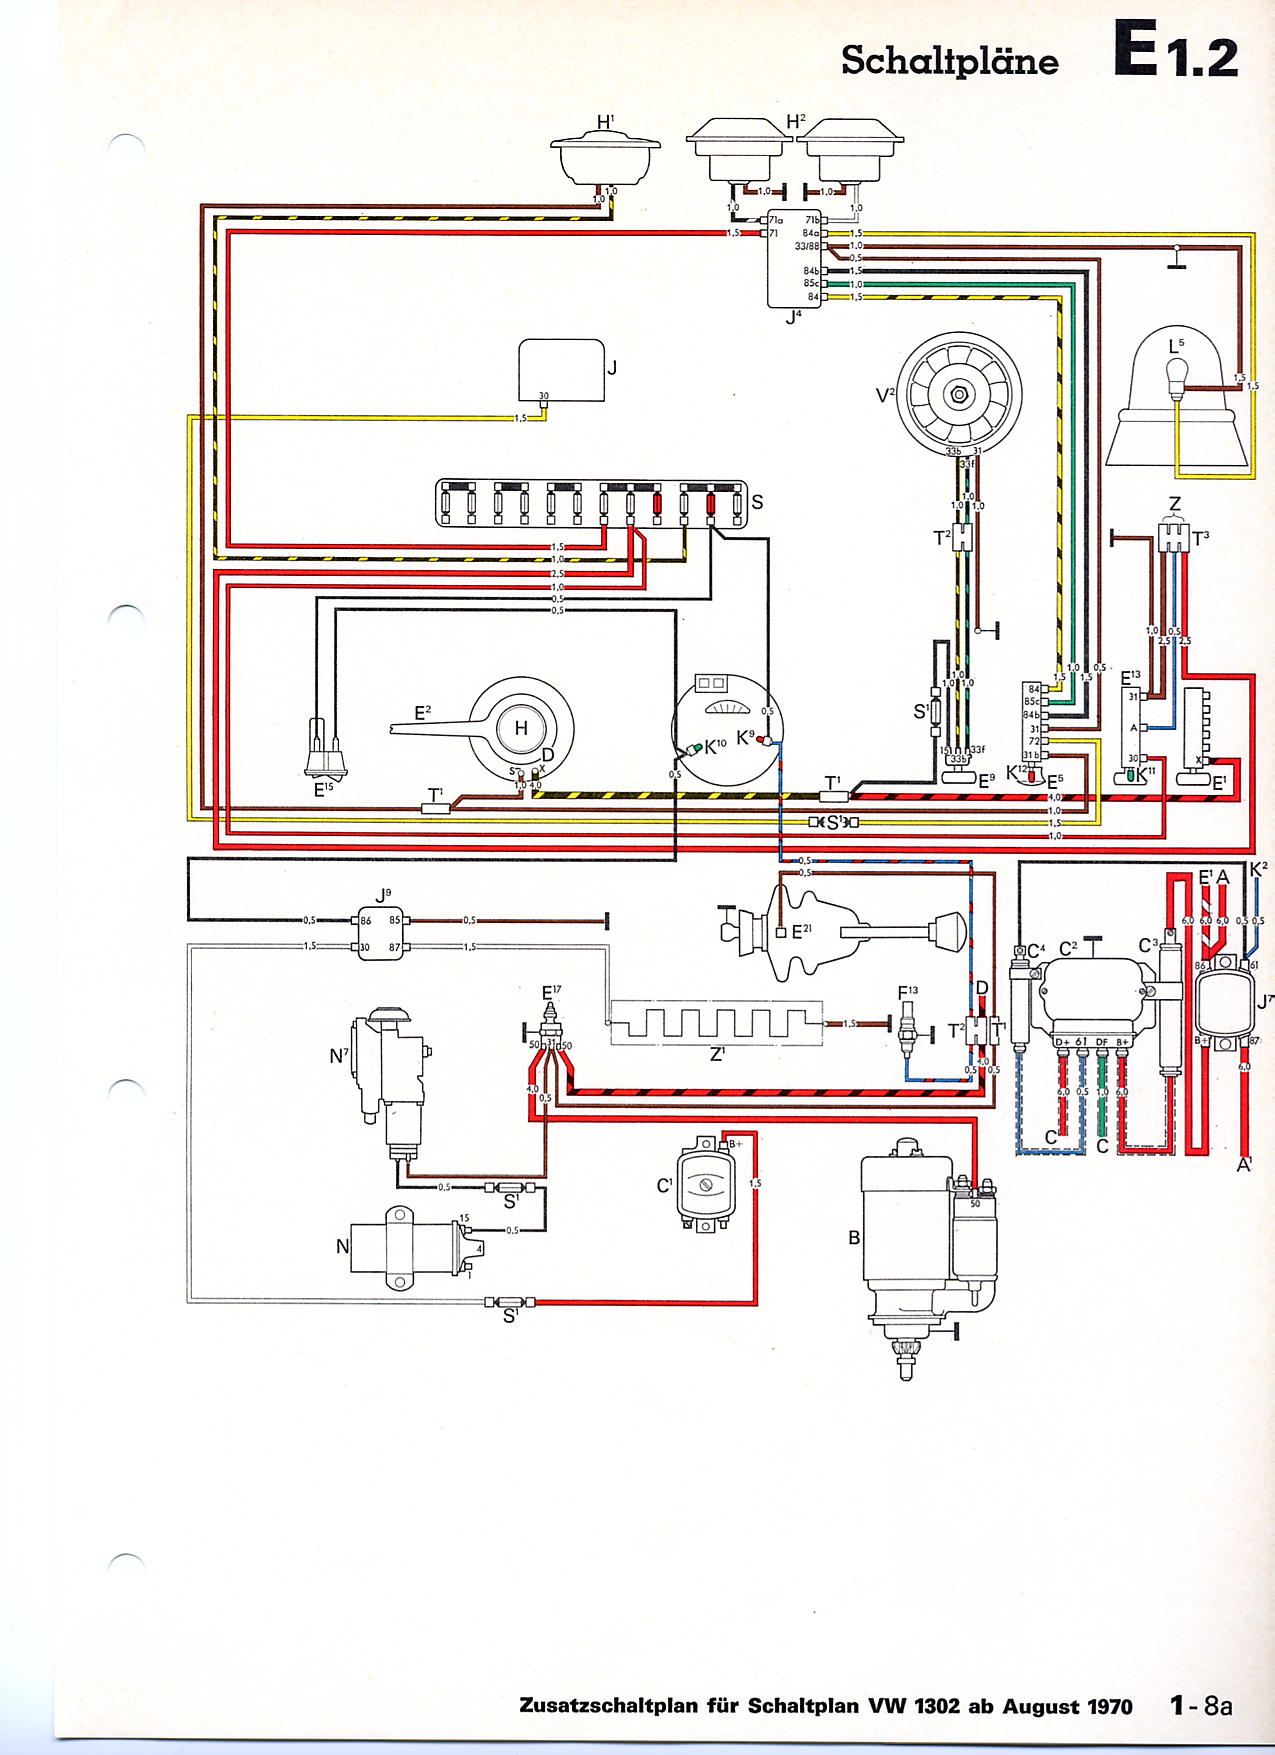 66 vw bug fuse box diagram ft 5486  wiring additionally vw super beetle wiring diagram also  vw super beetle wiring diagram